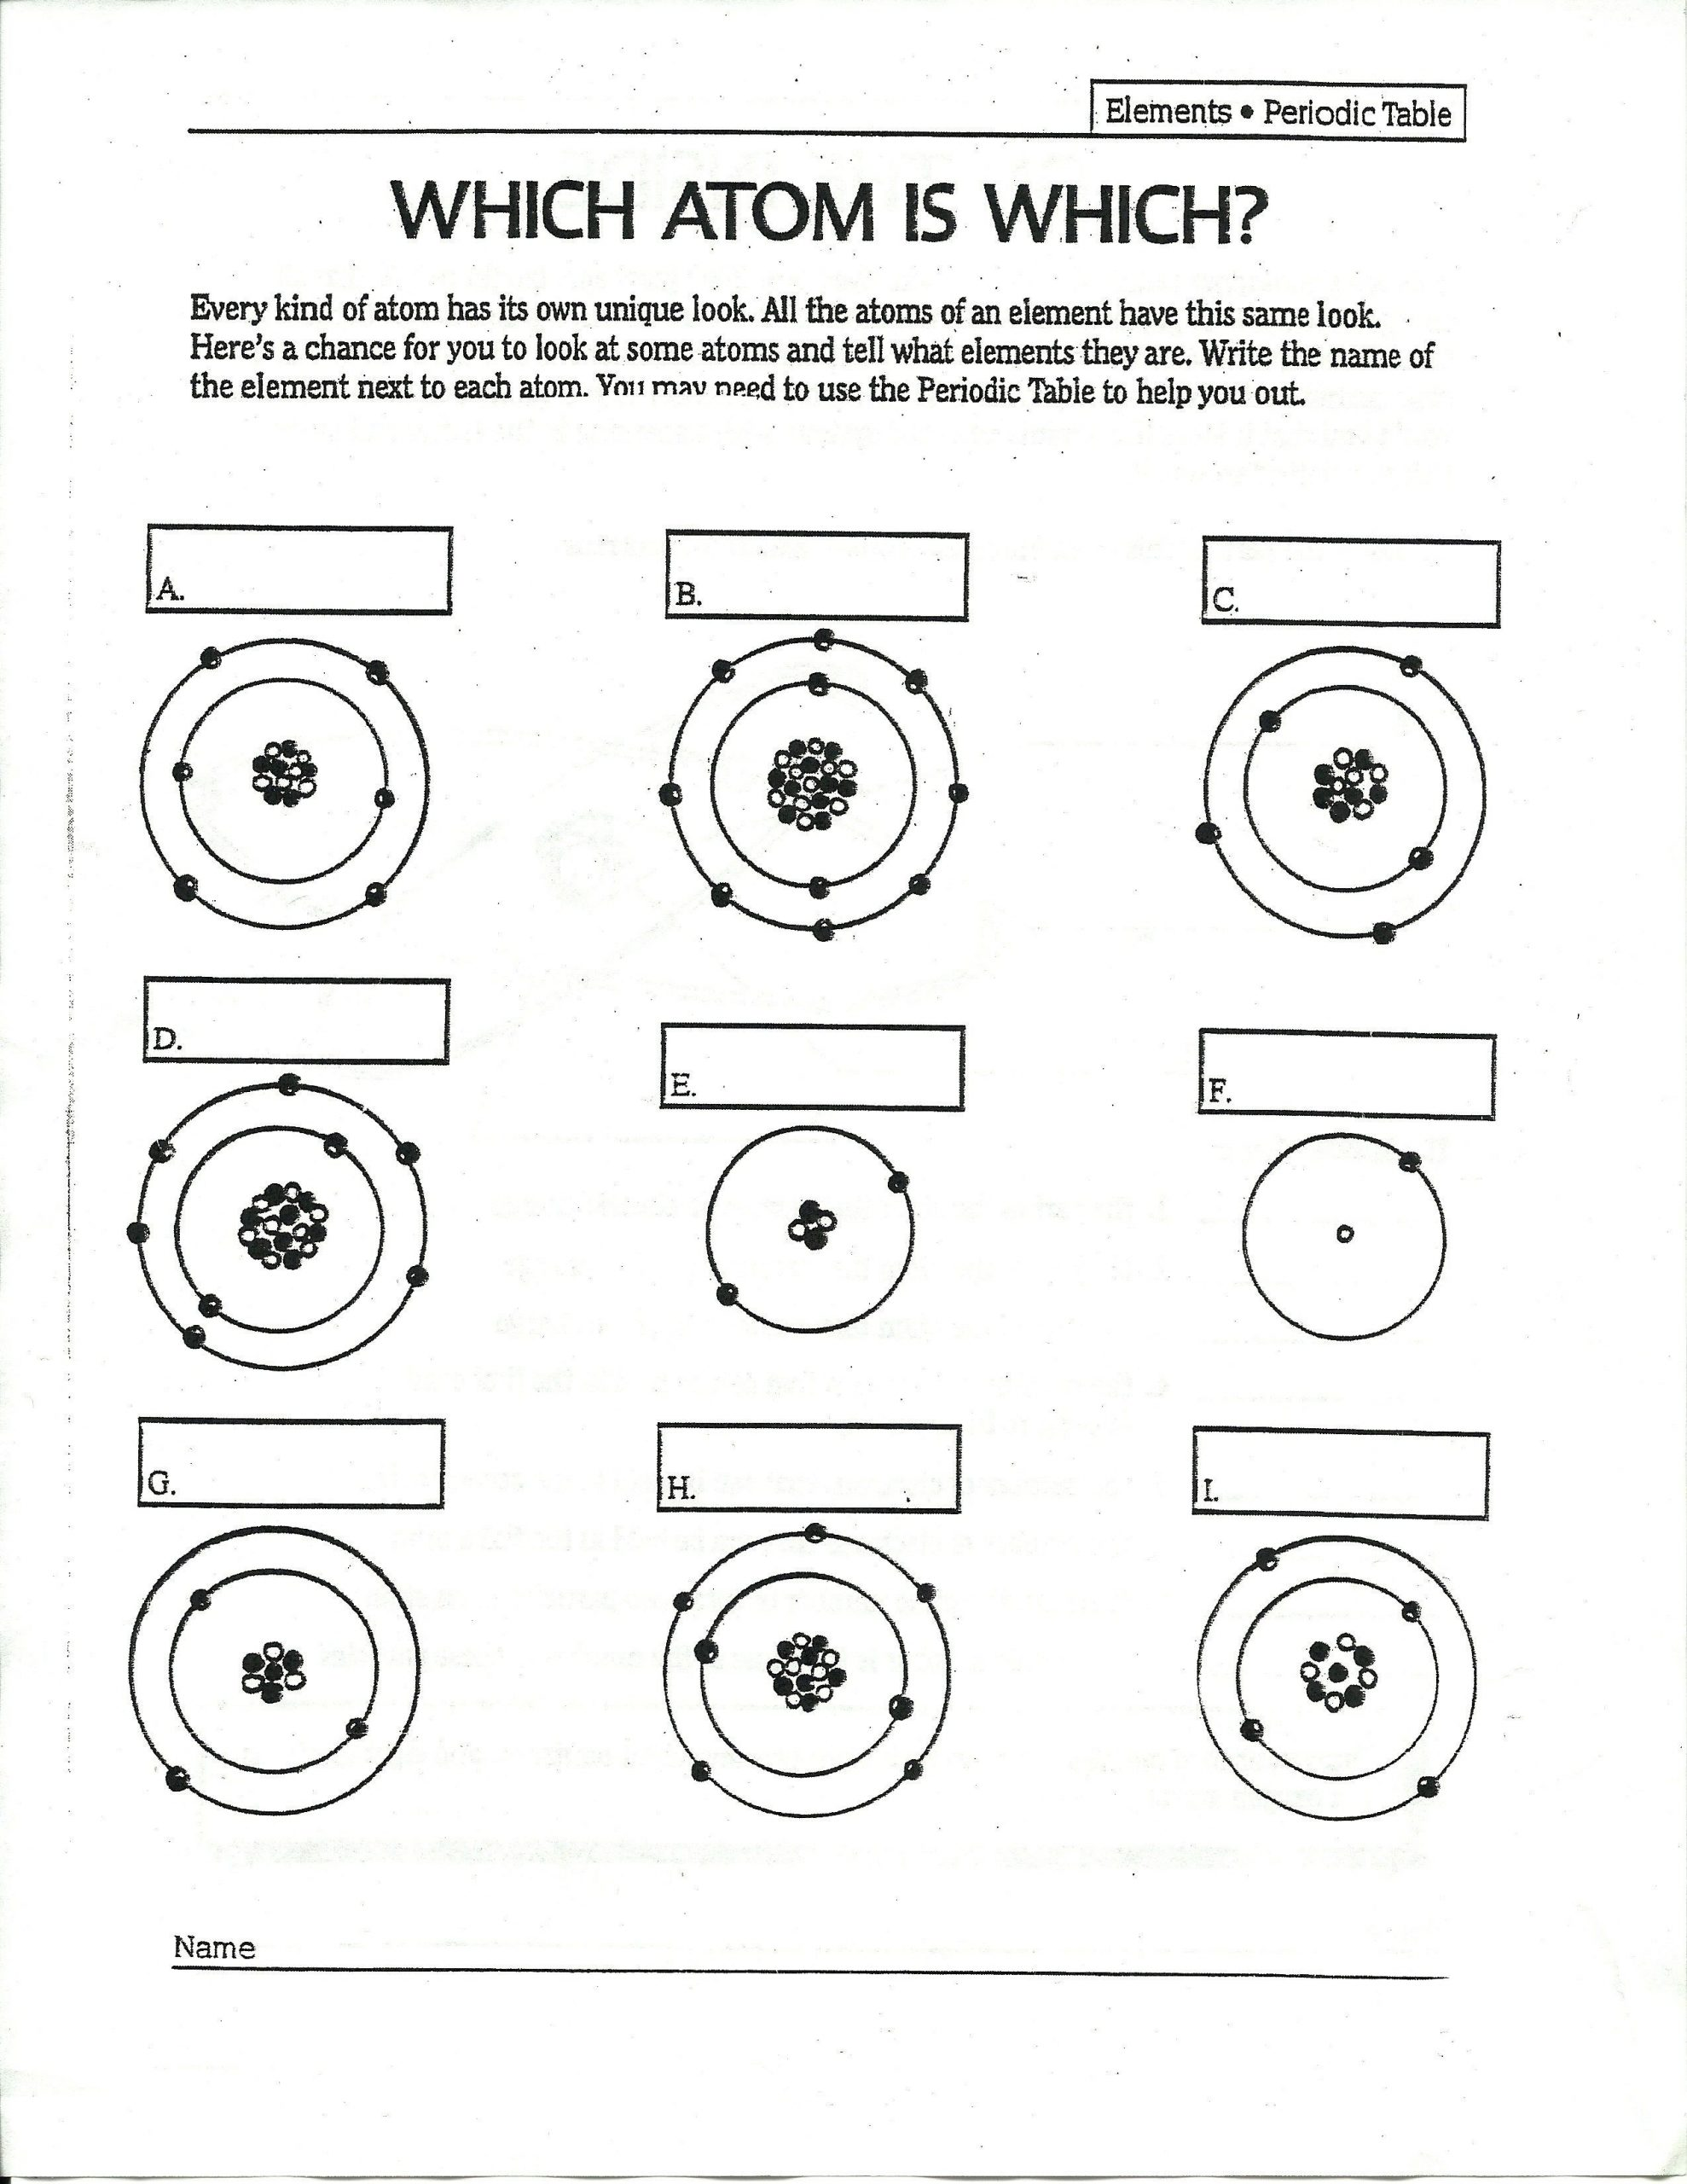 Drawing atoms Worksheet Answer Key Answers to Drawing atoms Worksheet Answers to Drawing